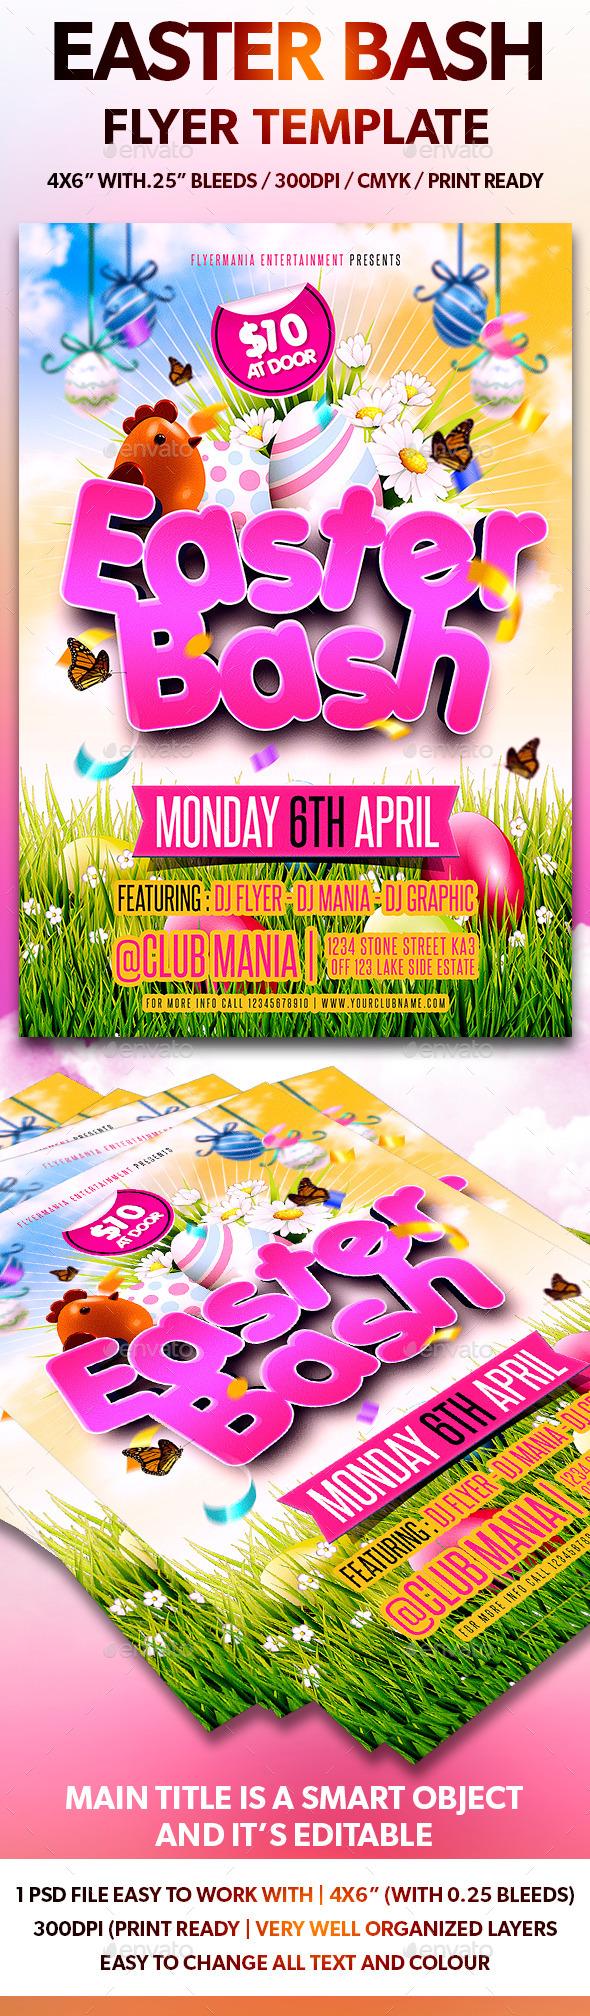 GraphicRiver Easter Bash Flyer Template 10685750